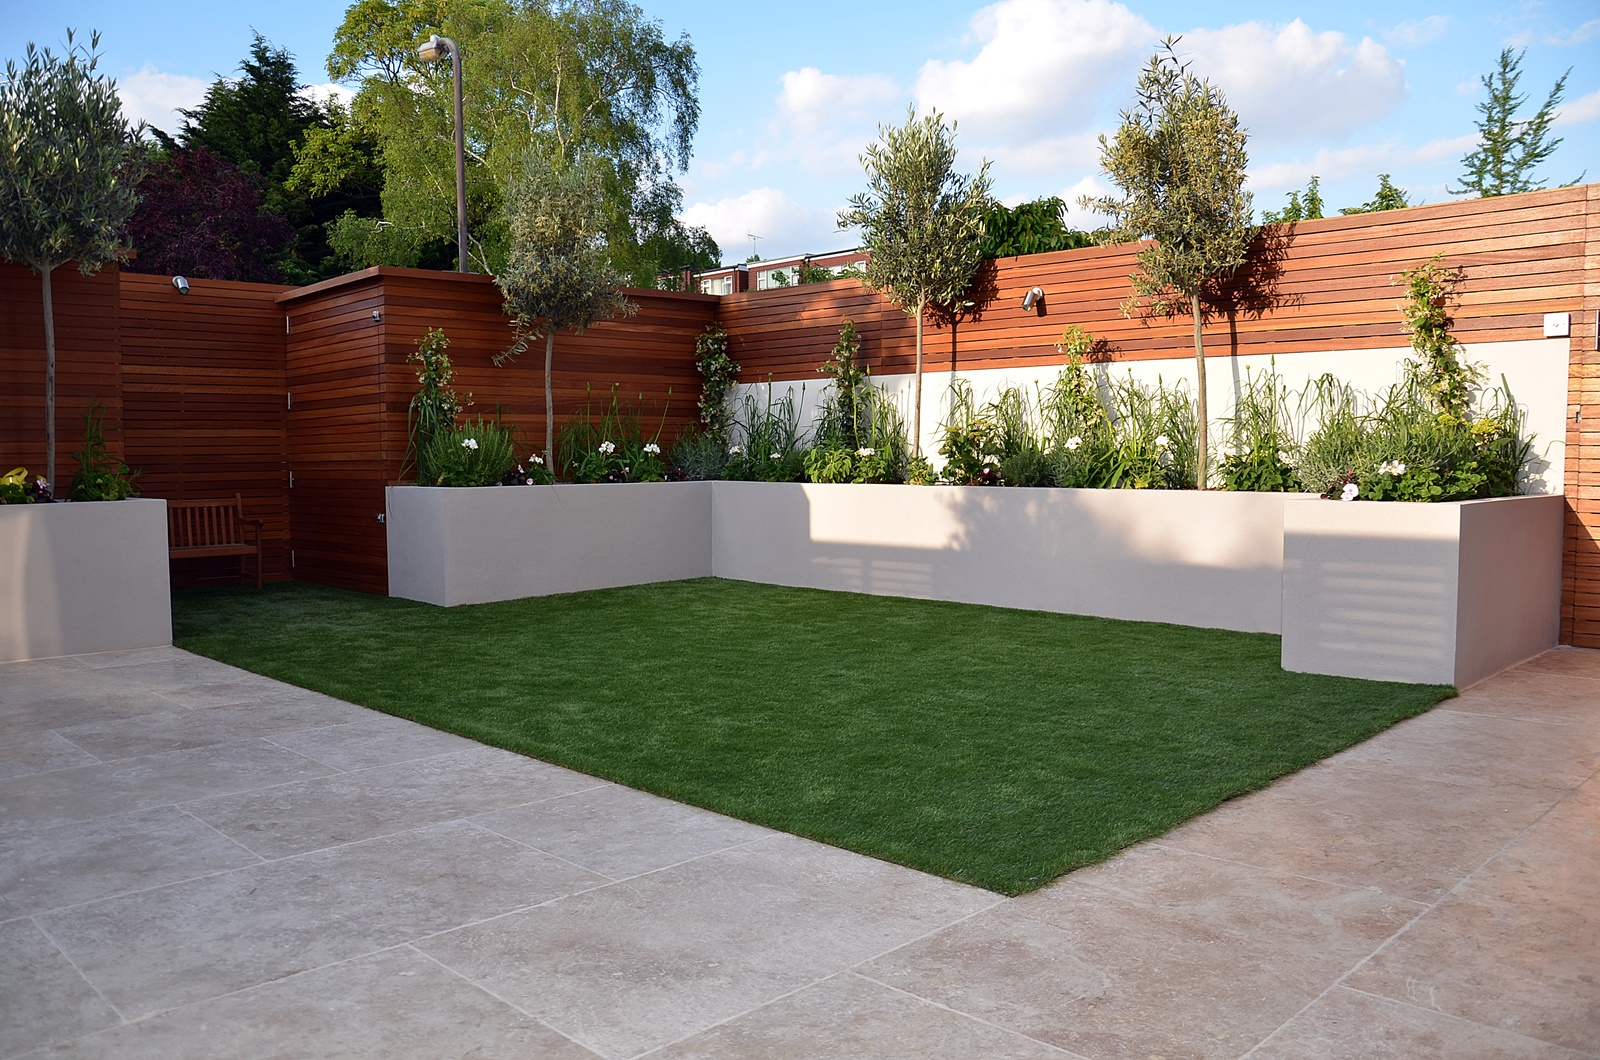 London garden design garden design for Paved garden designs